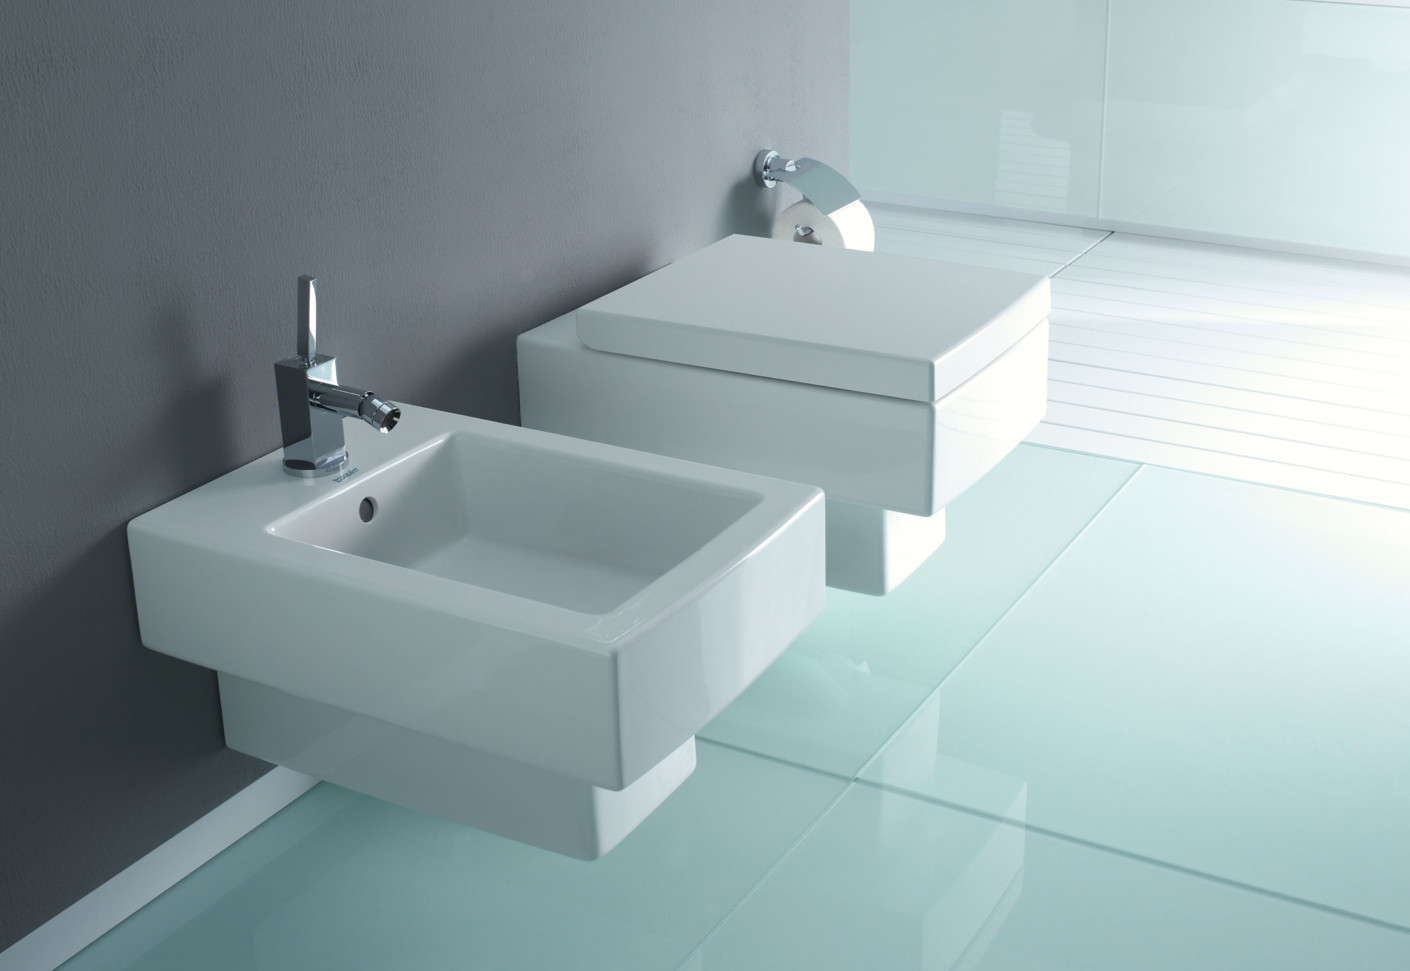 Building A Bathroom Vanity >> Vero Wall WC by Duravit | STYLEPARK